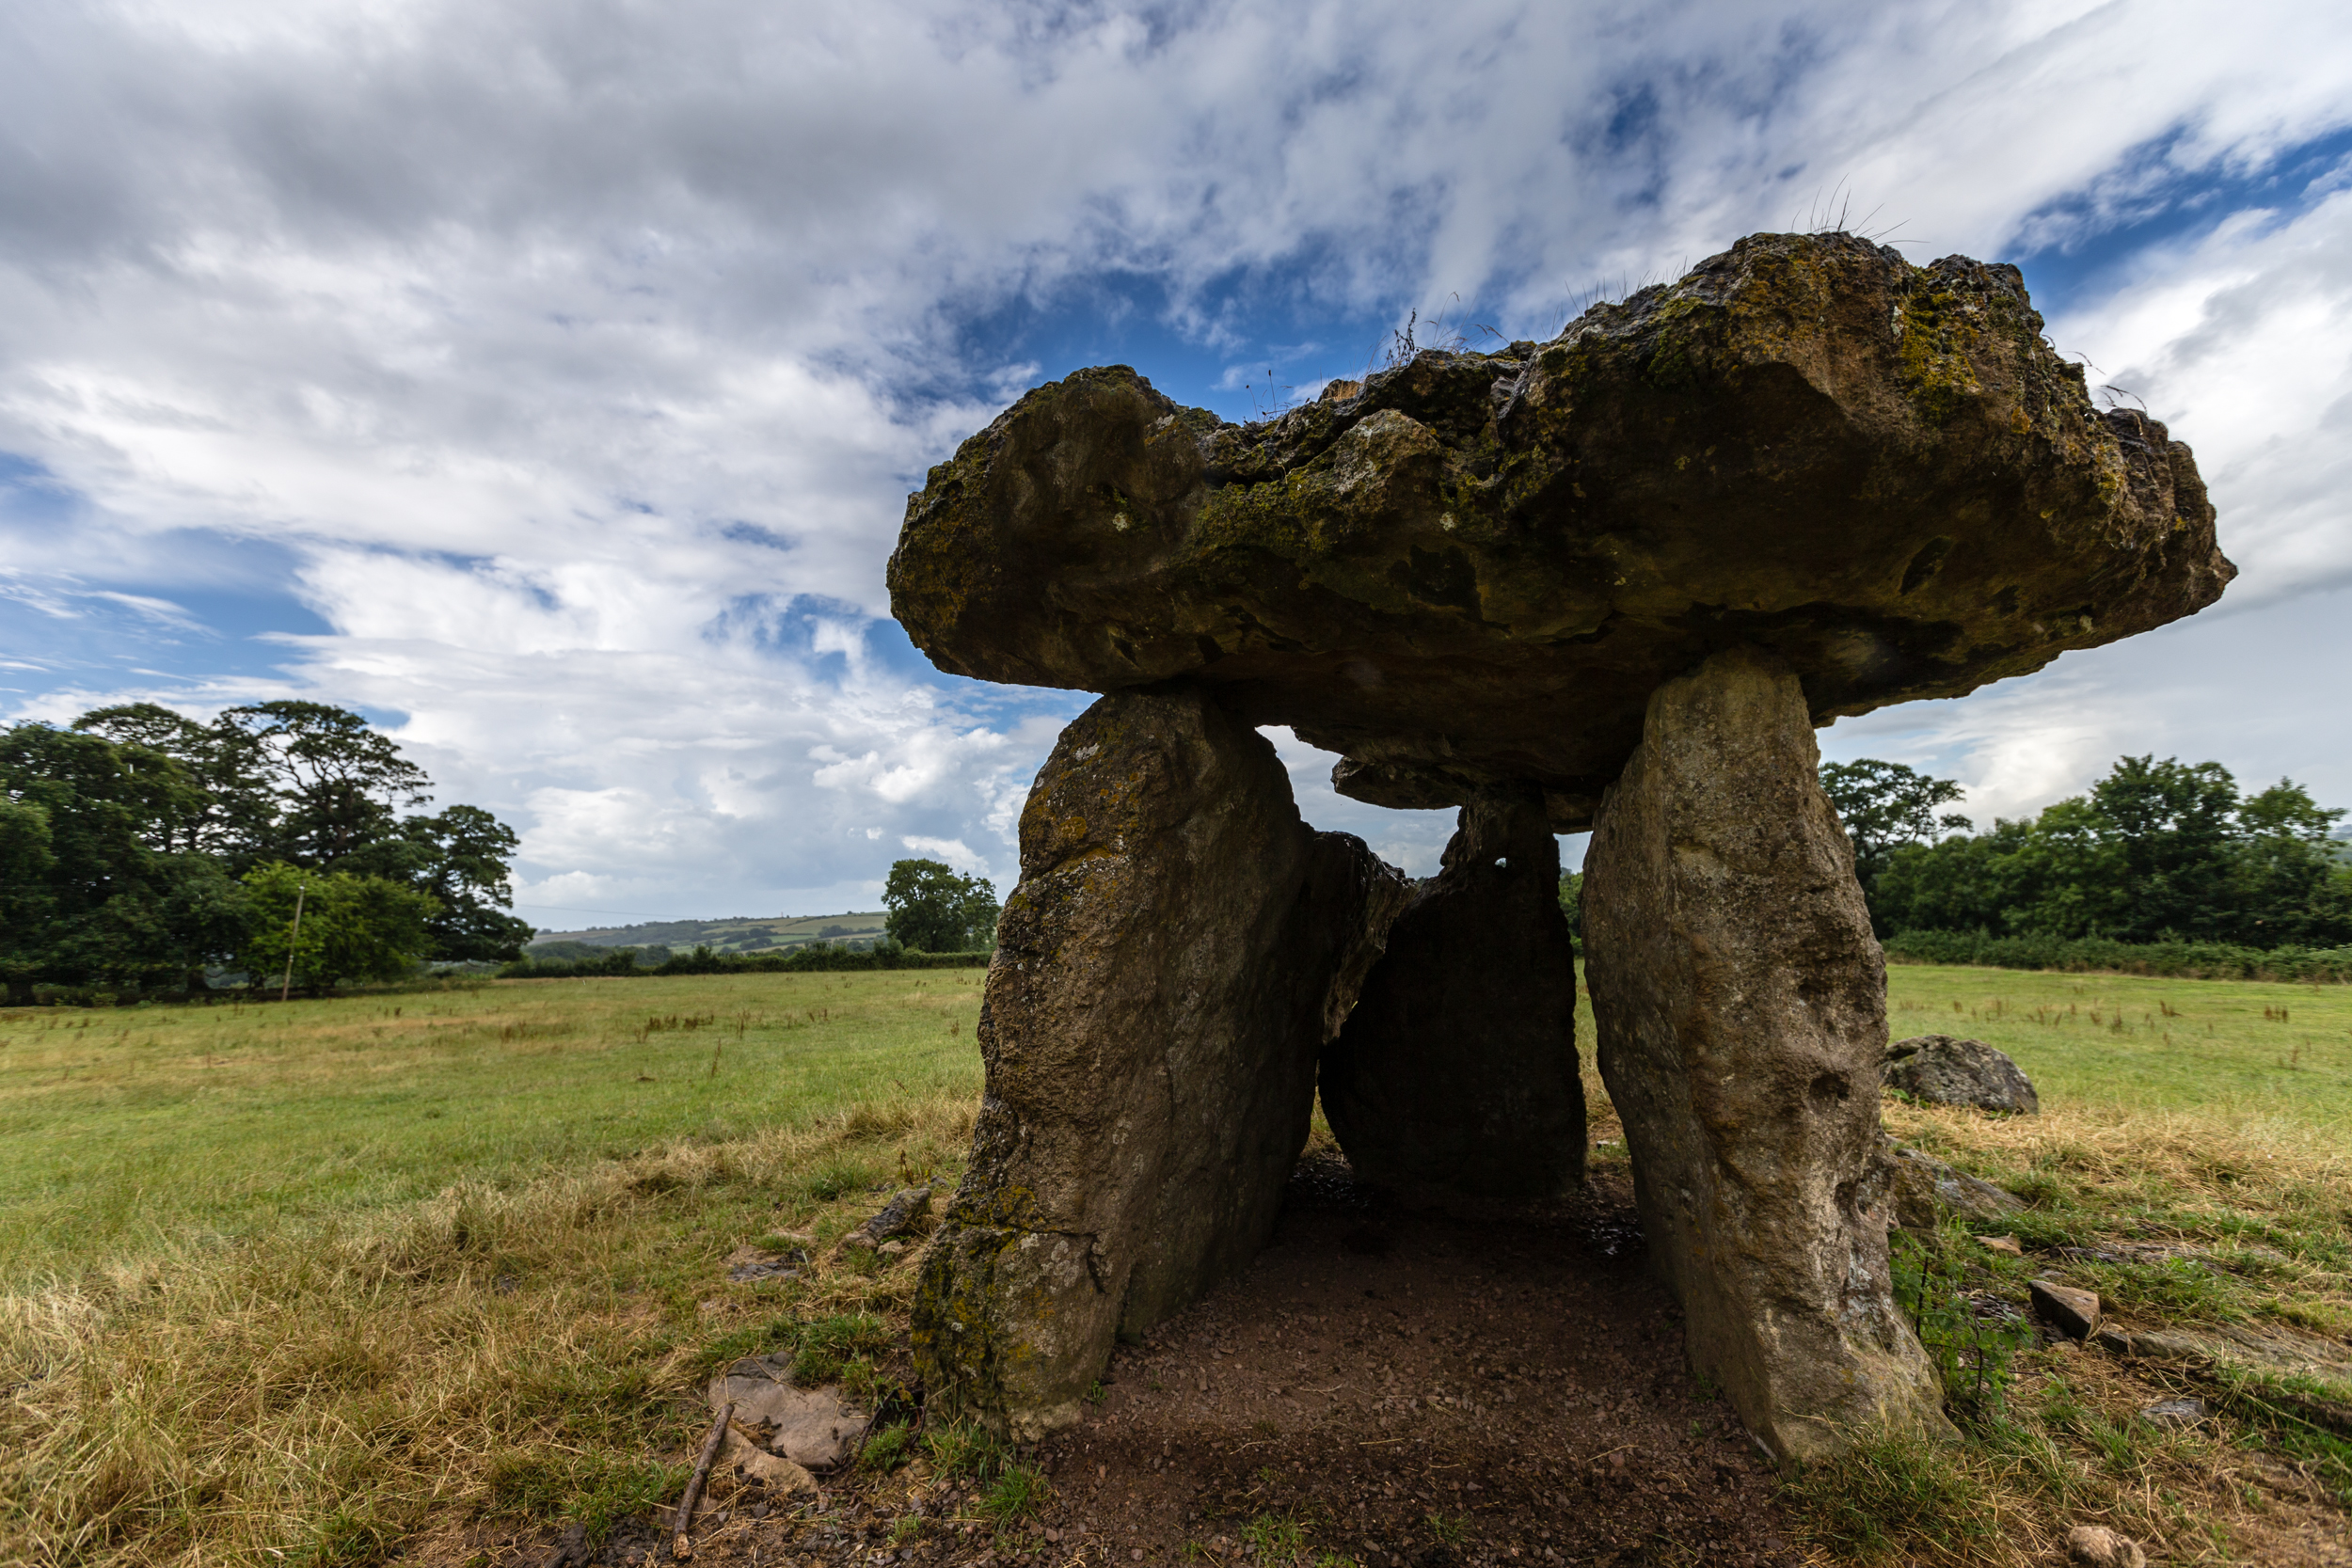 ©Jennifer Bailey 2013 St. Lythans Burial Chamber, Wales